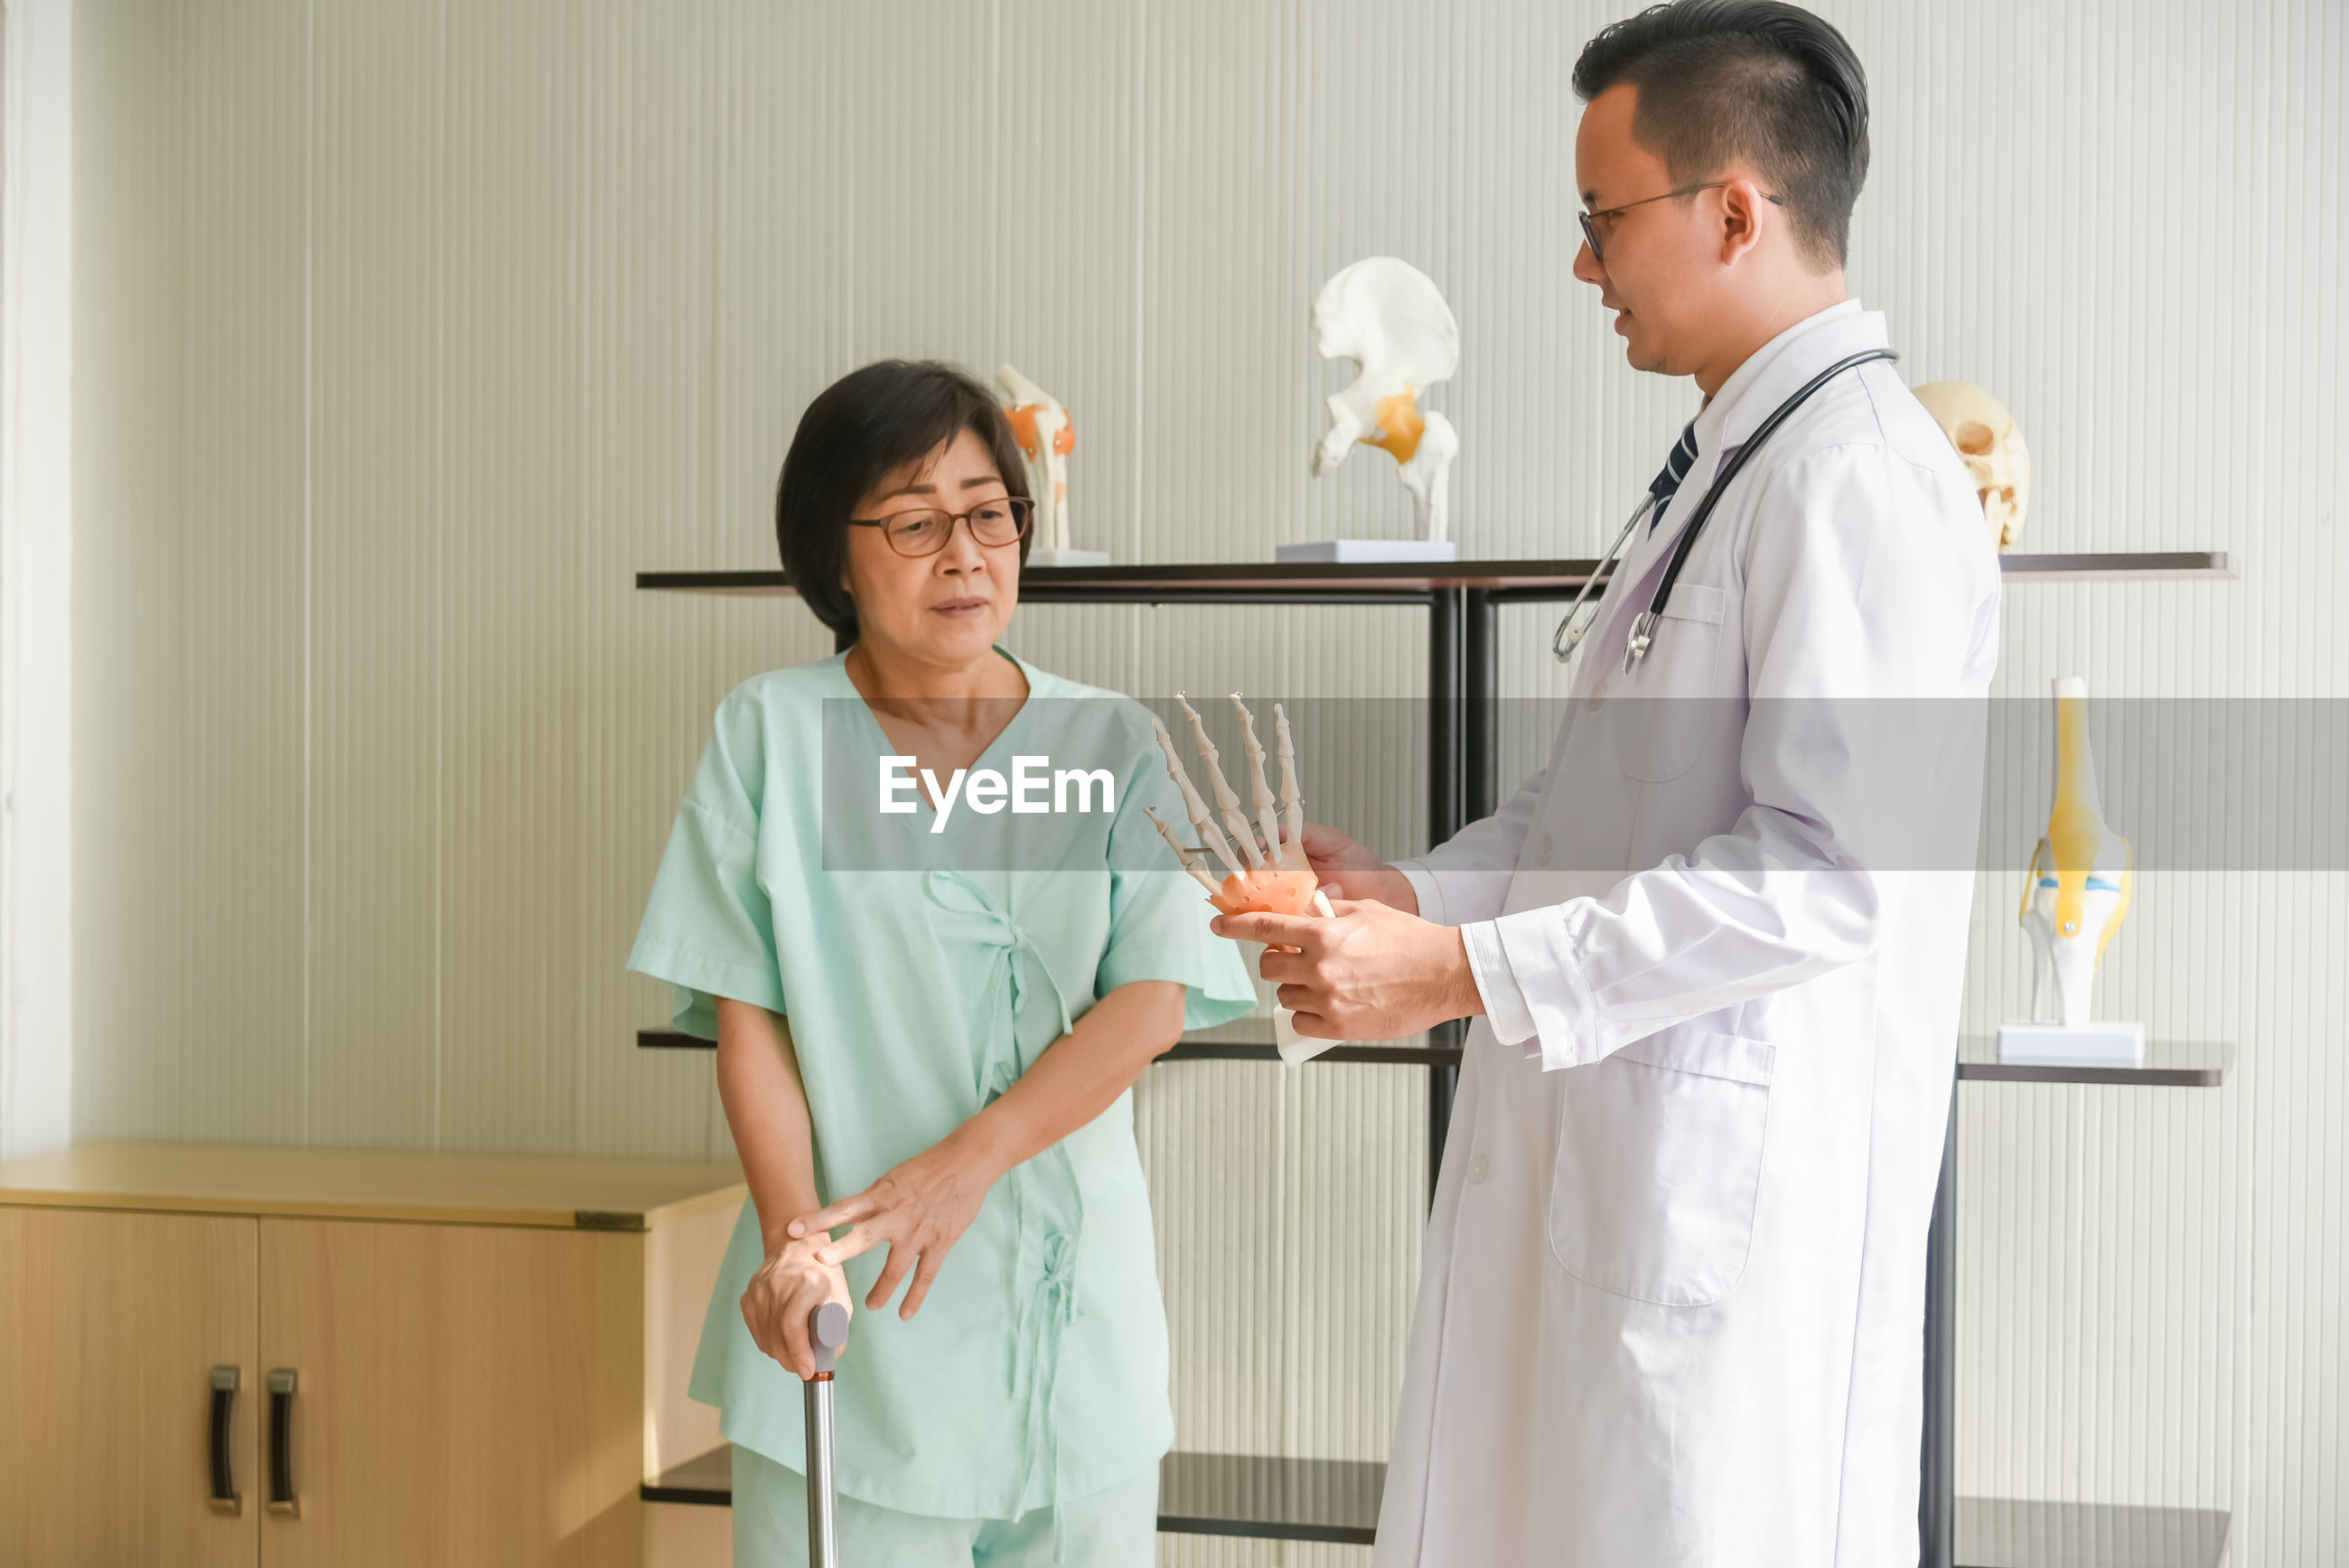 Doctor explaining hand figurine to female patient suffering from pain